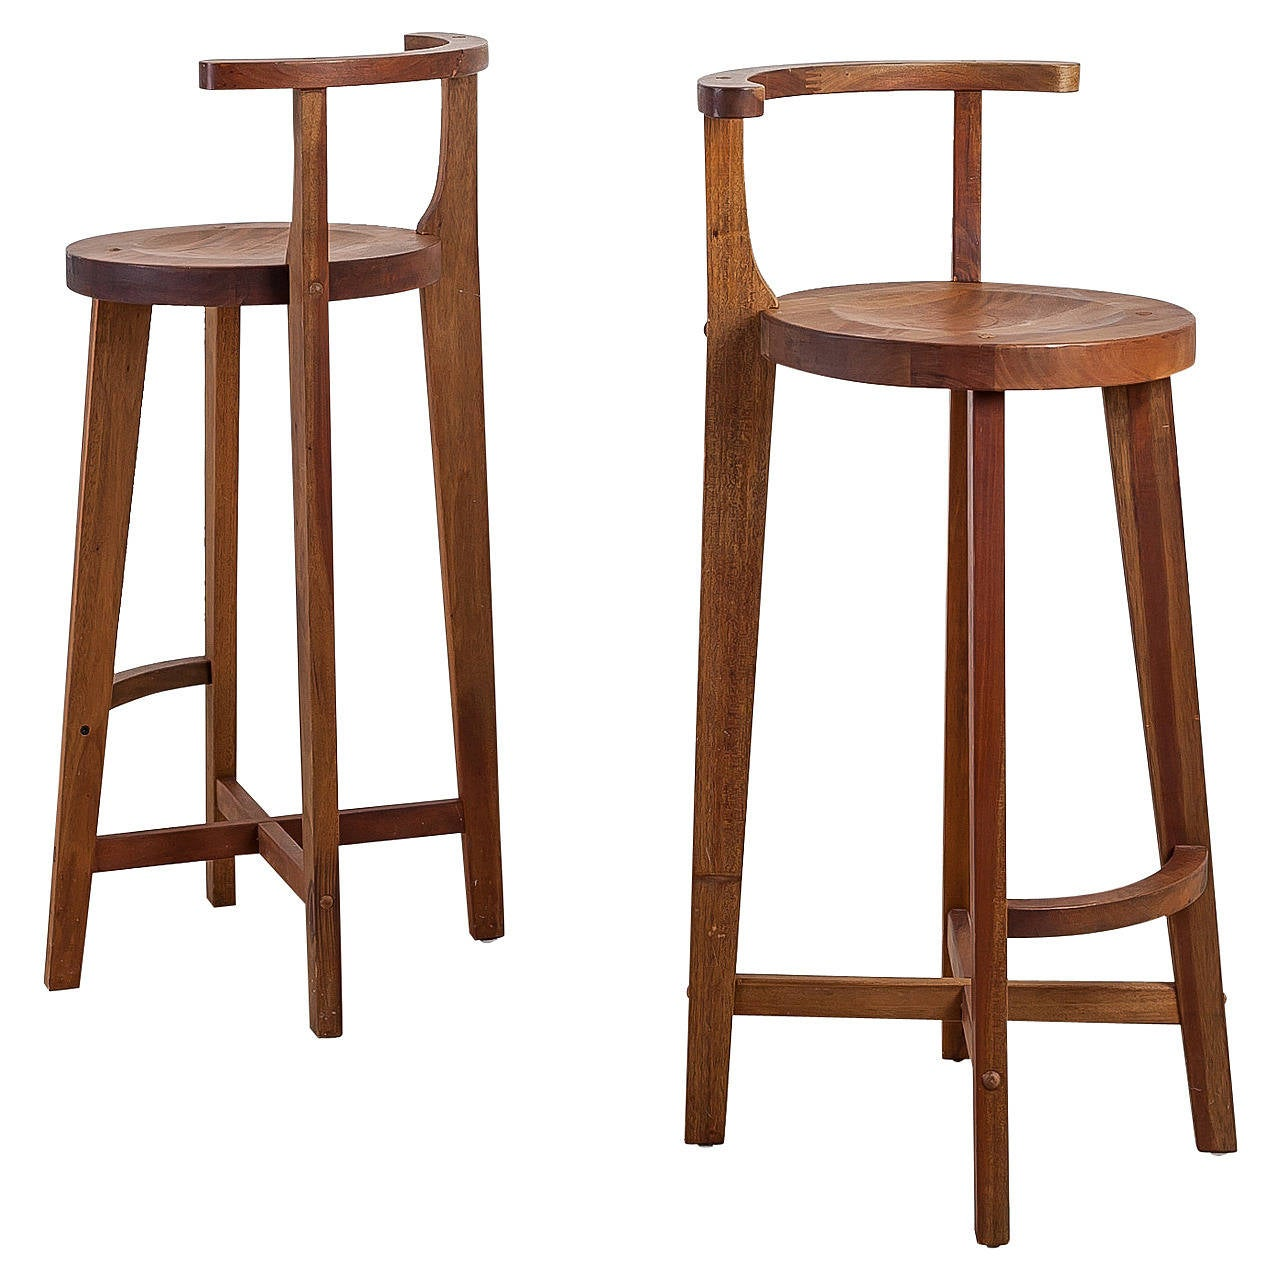 Marvelous photograph of Pair Studio crafted wooden bar stools with rounded back rests For Sale  with #4A2315 color and 1280x1280 pixels